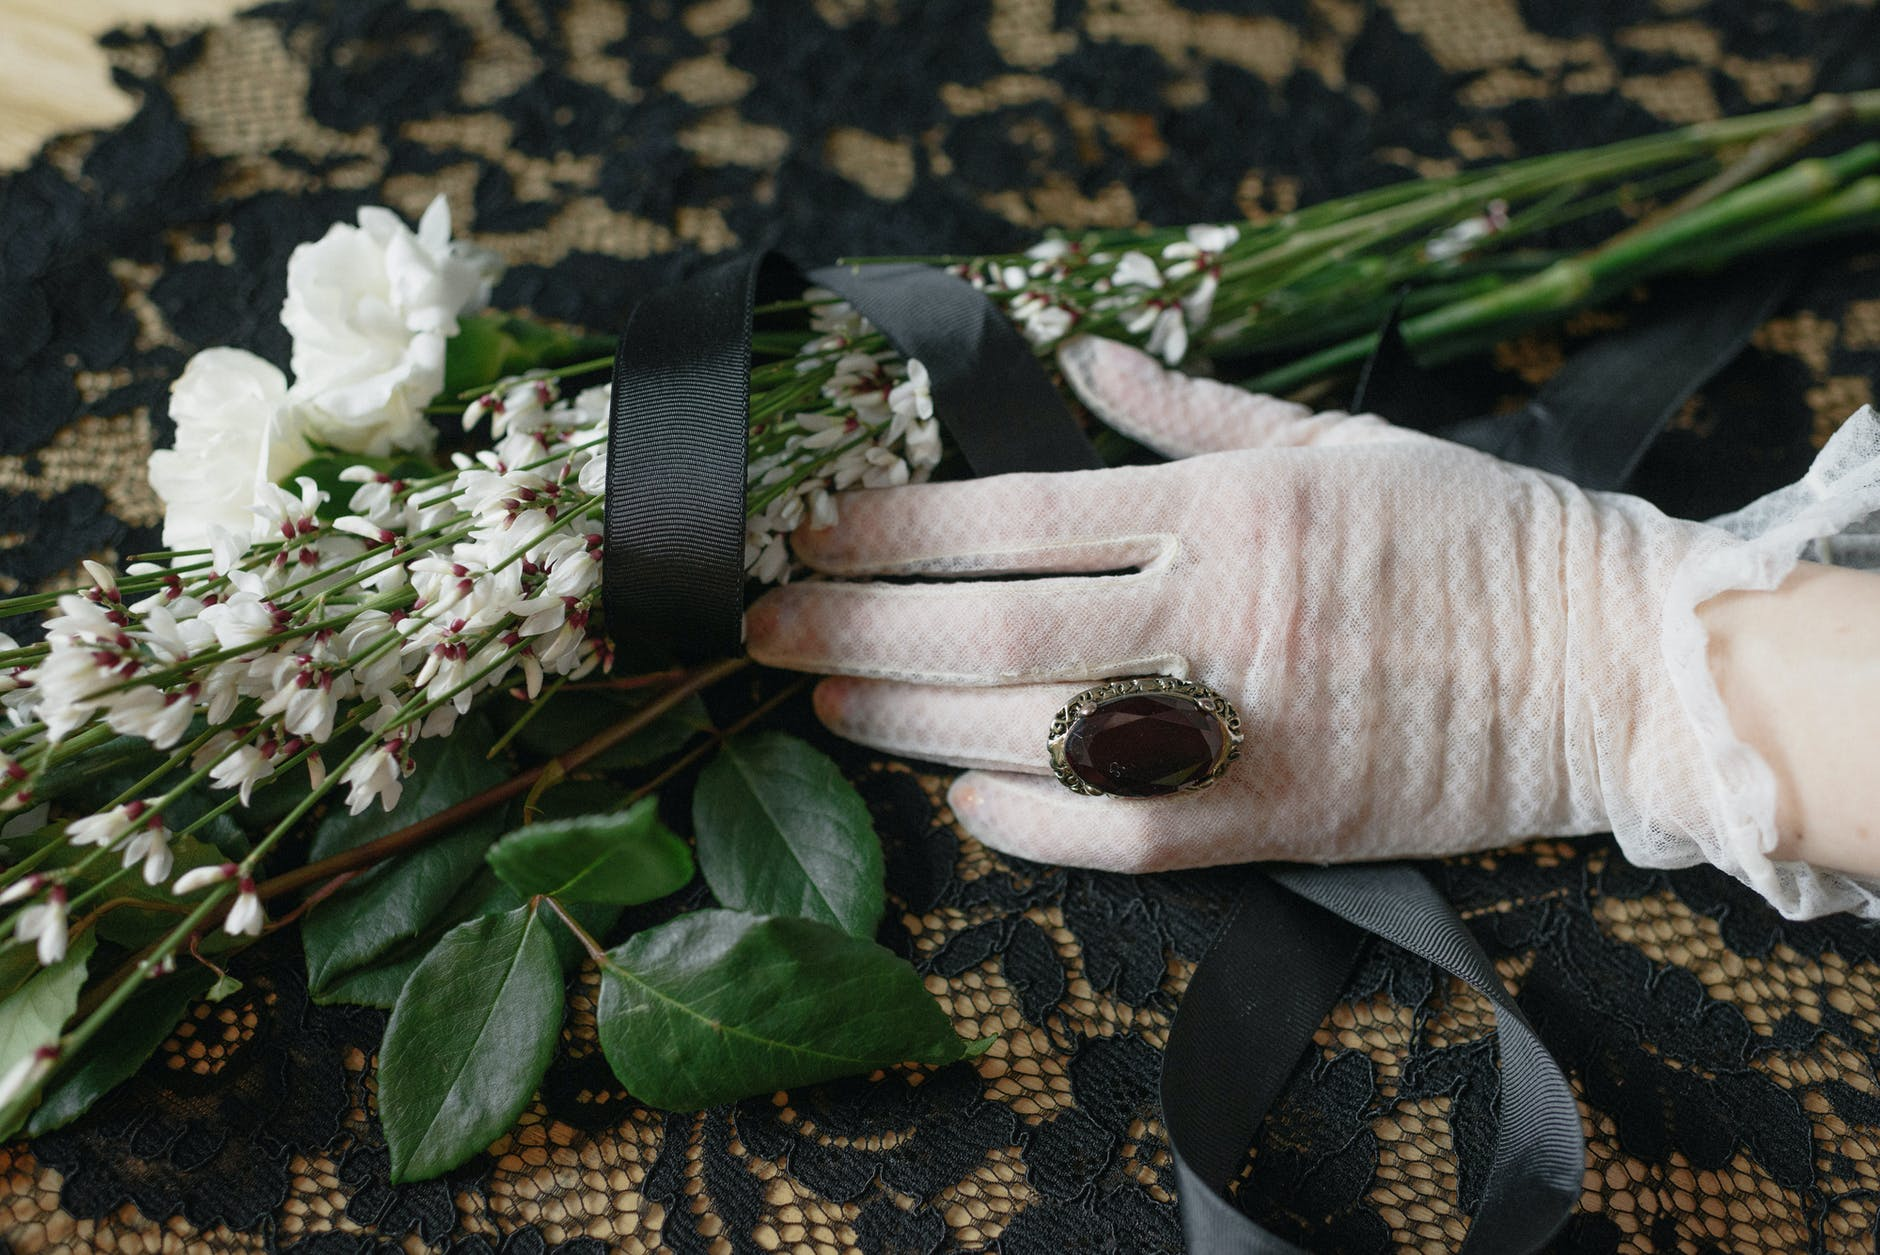 They had to make arrangements after Francesca's father's funeral. | Source: Pexels